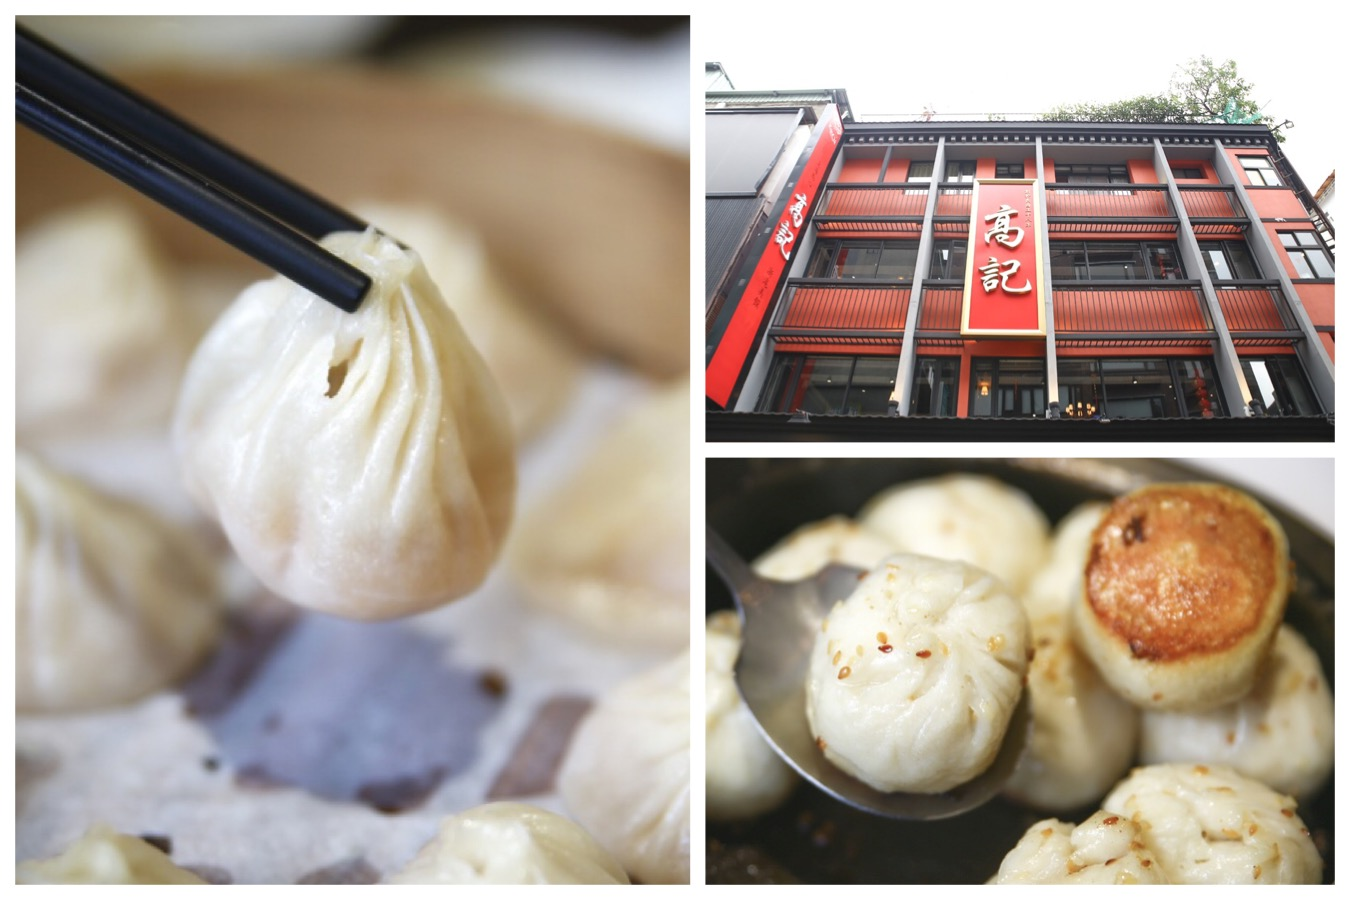 Kao Chi 高記 - The Other Famous Xiao Long Bao & Sheng Jian Bao Restaurant At Taipei's Yong Kang Street